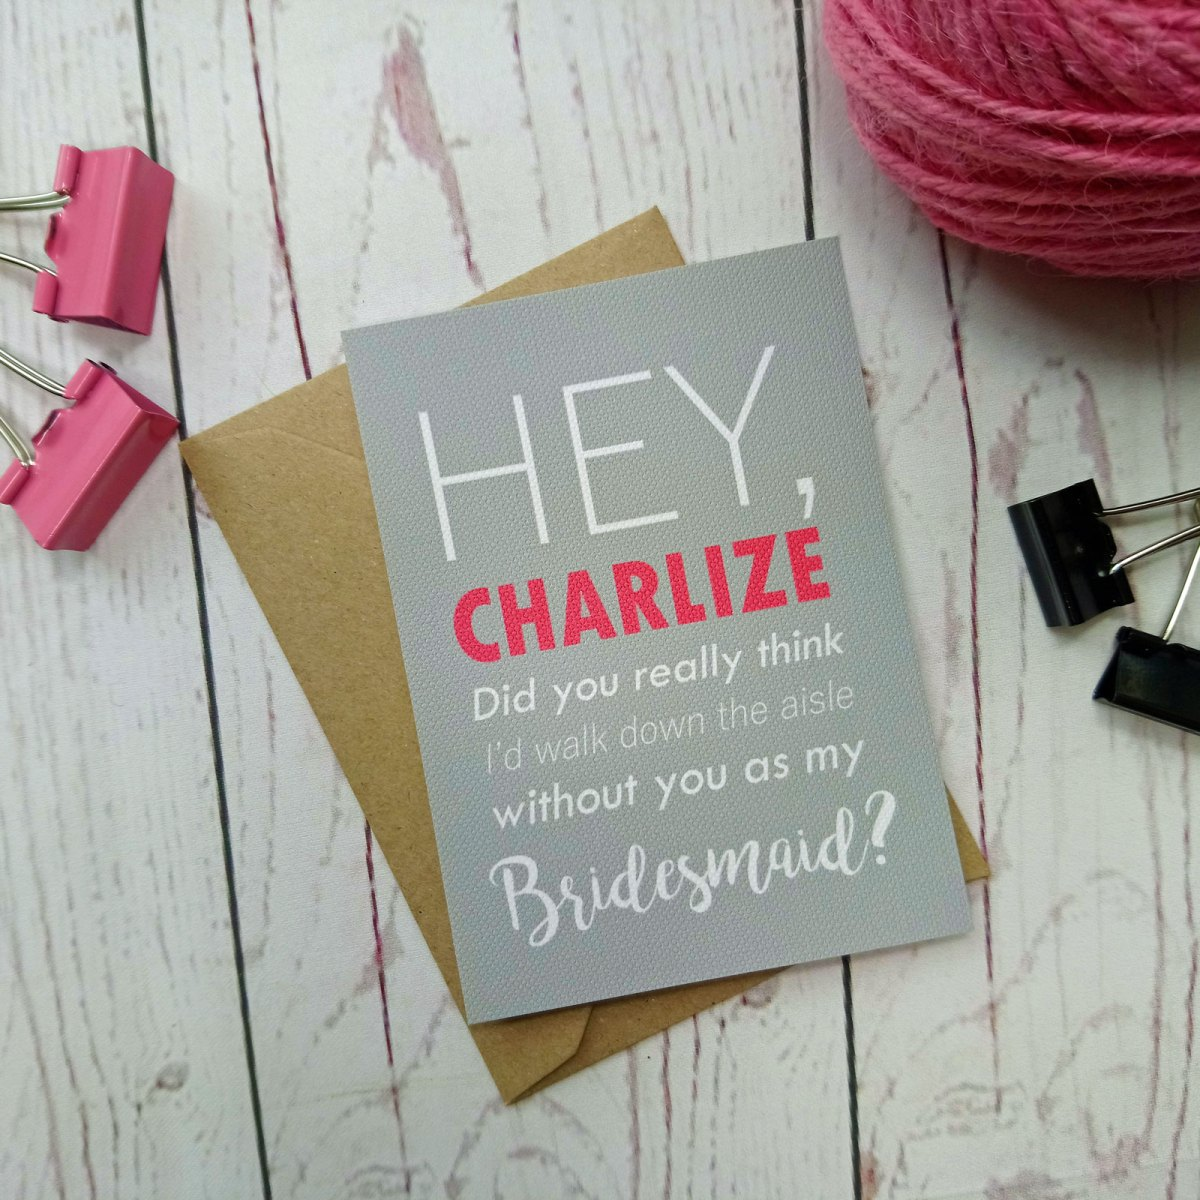 Grey background with white and pink writing. Miniature Boy Meets Girl Bridesmaid Request Card